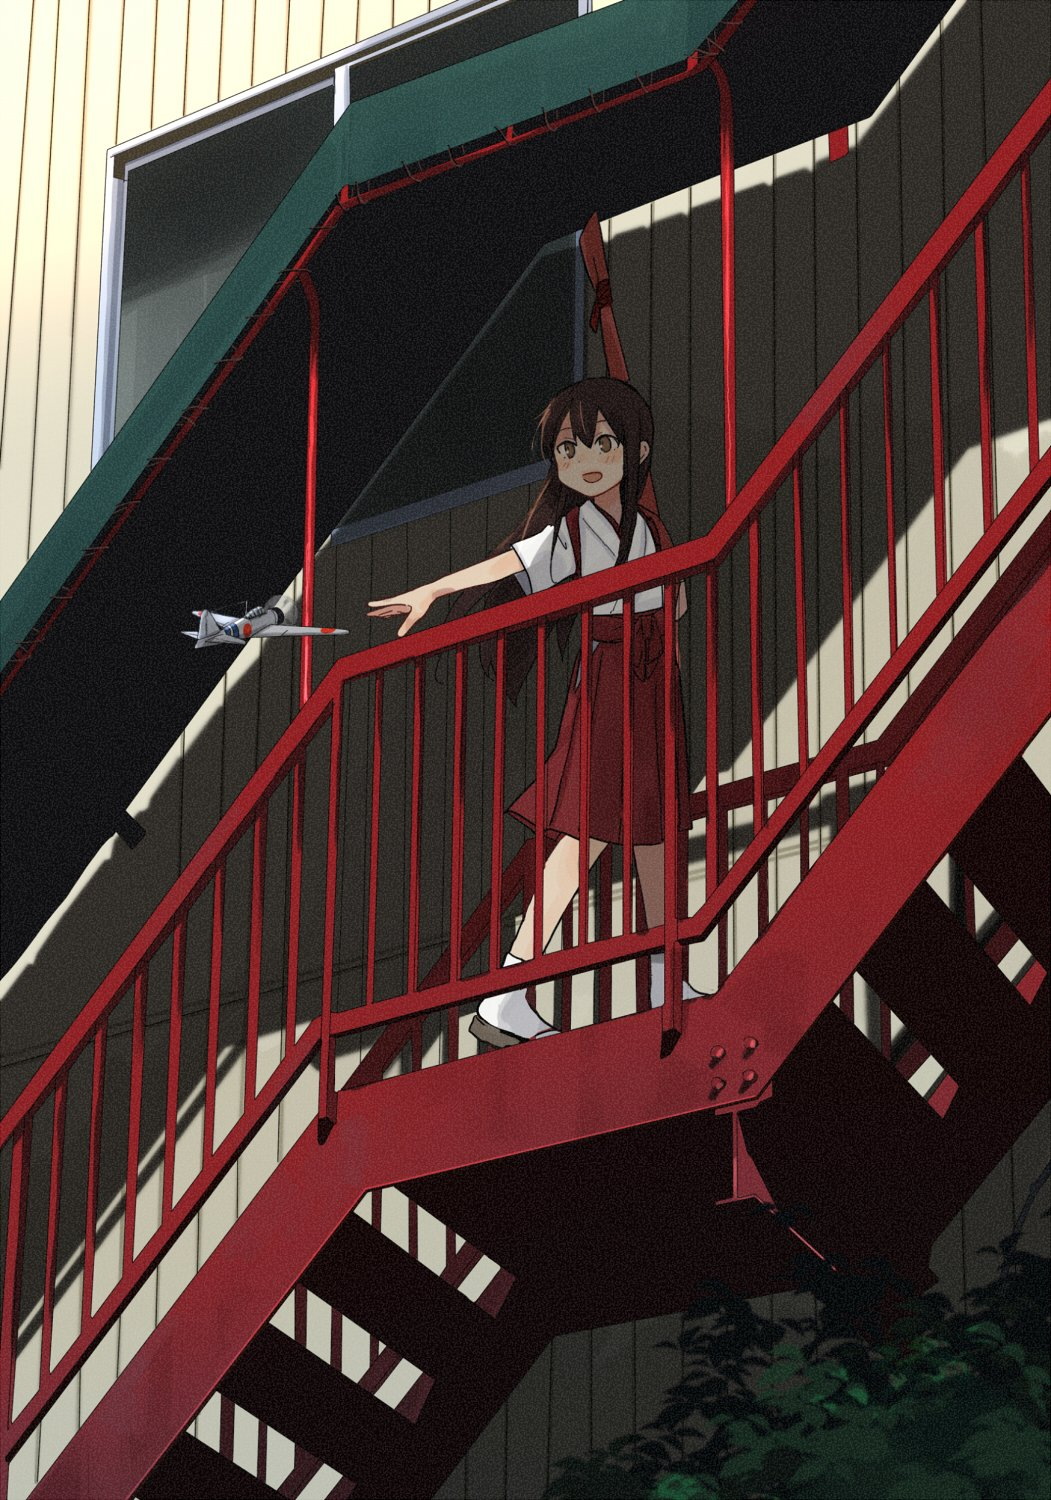 1girl a6m_zero aircraft airplane akagi_(kantai_collection) annin_musou brown_eyes brown_hair geta hakama_skirt highres japanese_clothes kantai_collection long_hair open_mouth red_skirt skirt smile solo stairs straight_hair tabi younger